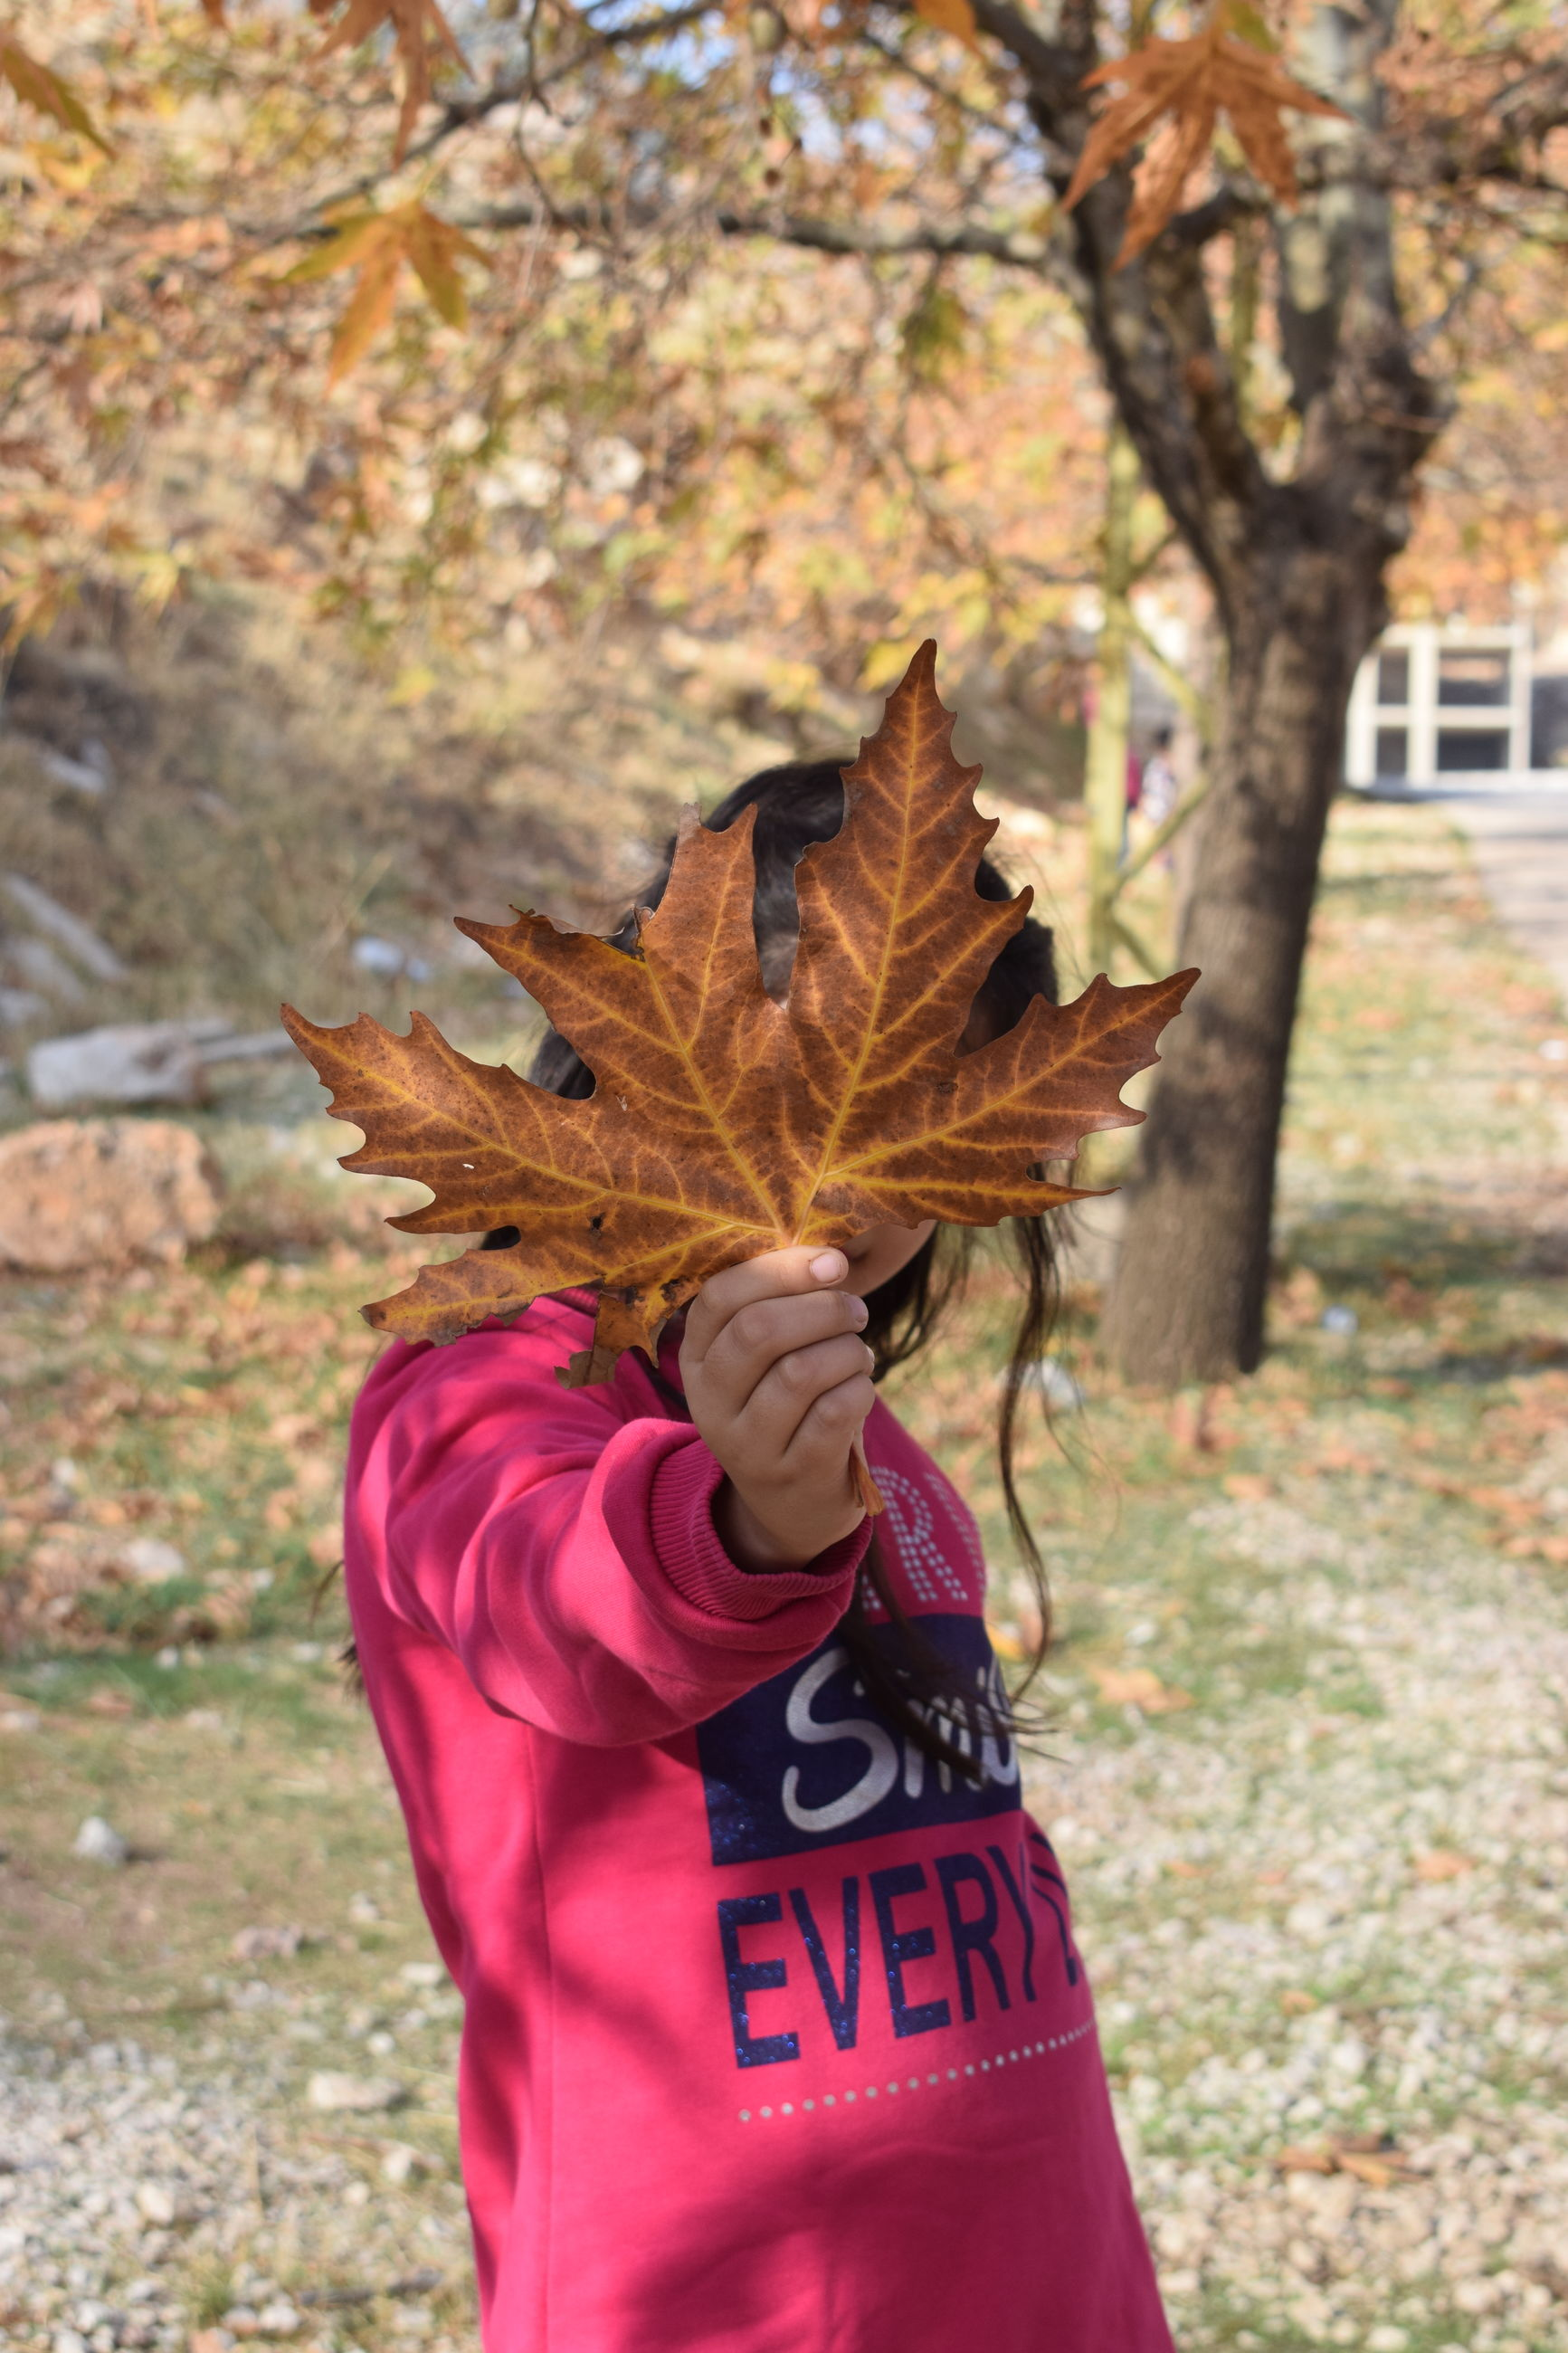 autumn, one person, leaf, change, real people, human hand, day, outdoors, nature, focus on foreground, maple leaf, tree, leisure activity, holding, lifestyles, human body part, beauty in nature, close-up, people